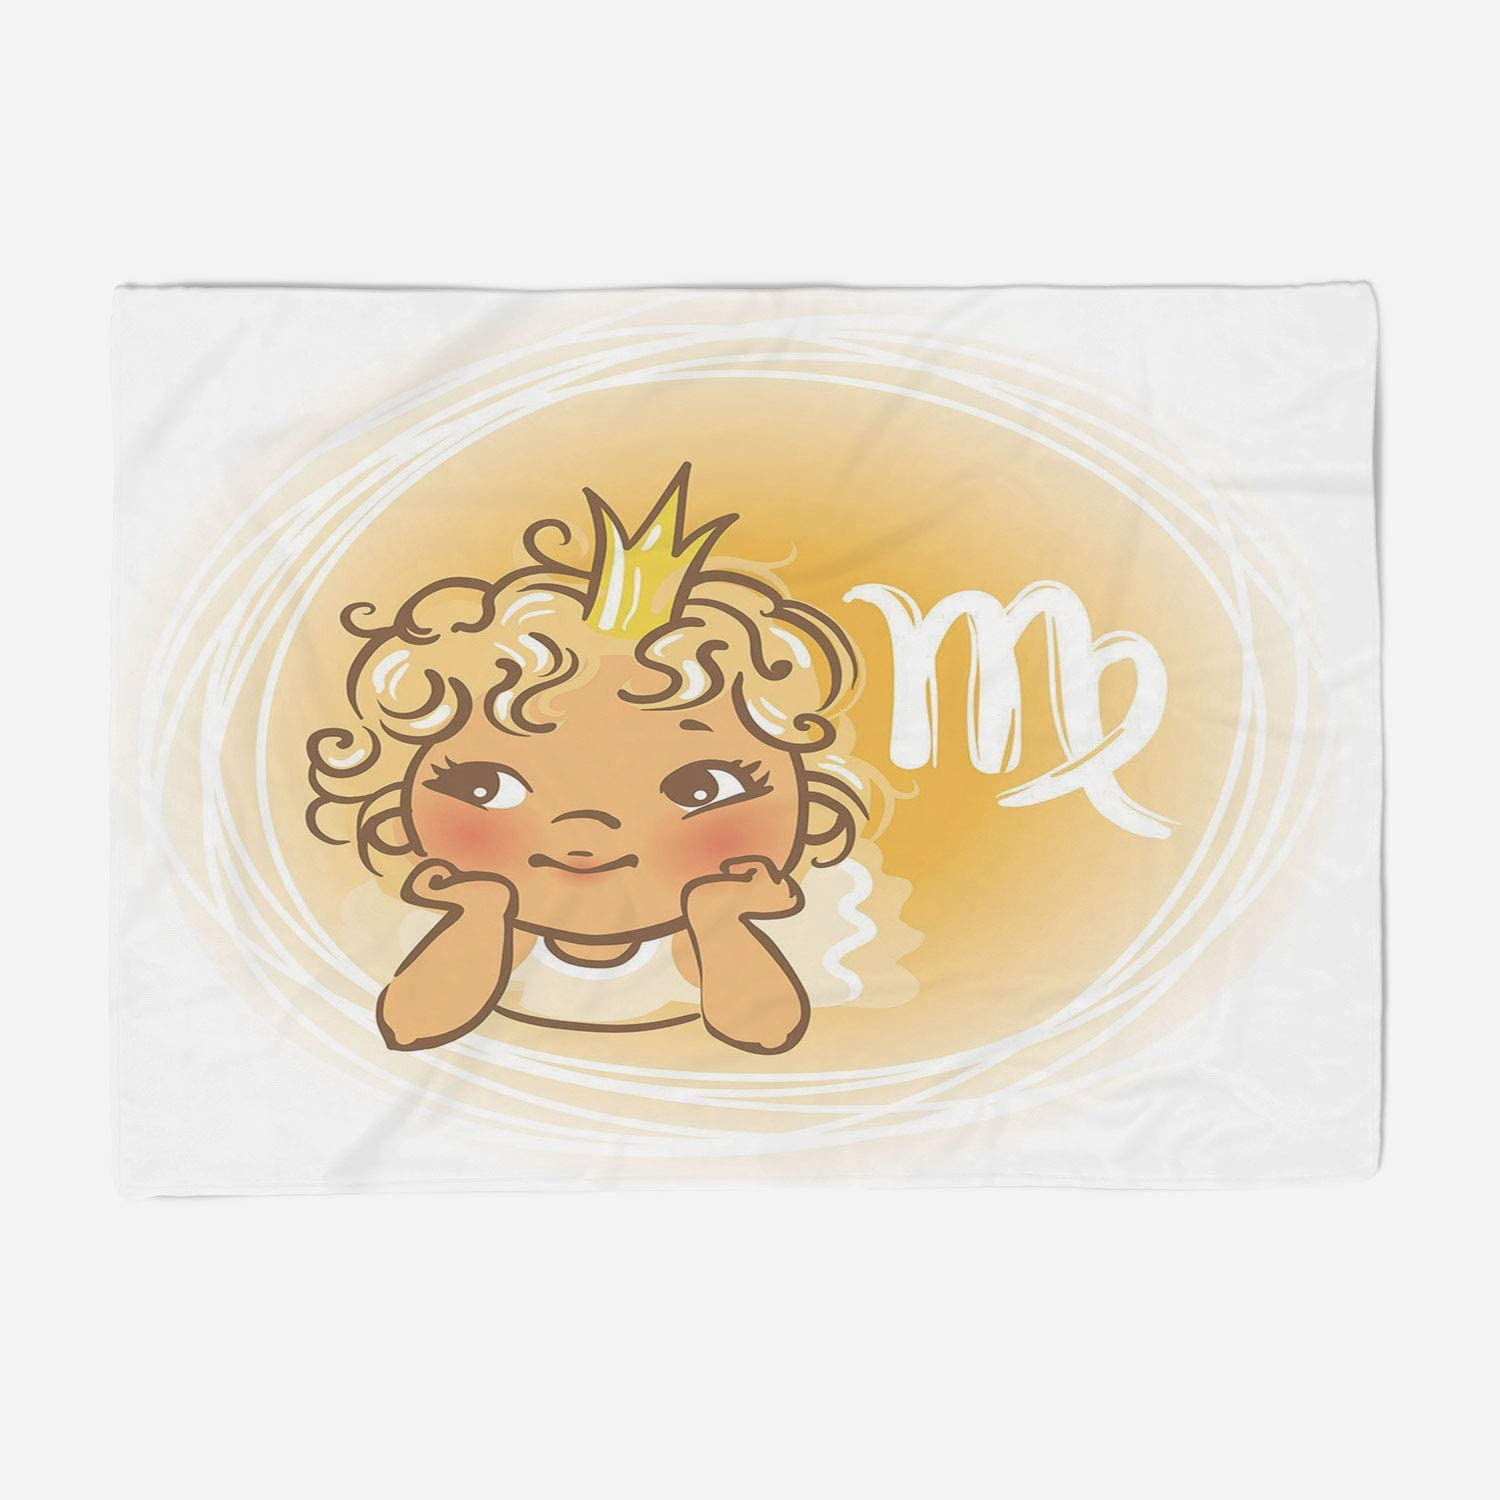 YOLIYANA Microfiber Throw Blanket Set Perfect for Couch Sofa or Bed 49x39 inches Virgo,Baby Zodiac Representation Cute Little Girl with A Crown Angel Cartoon Decorative,Pale orange Yellow White